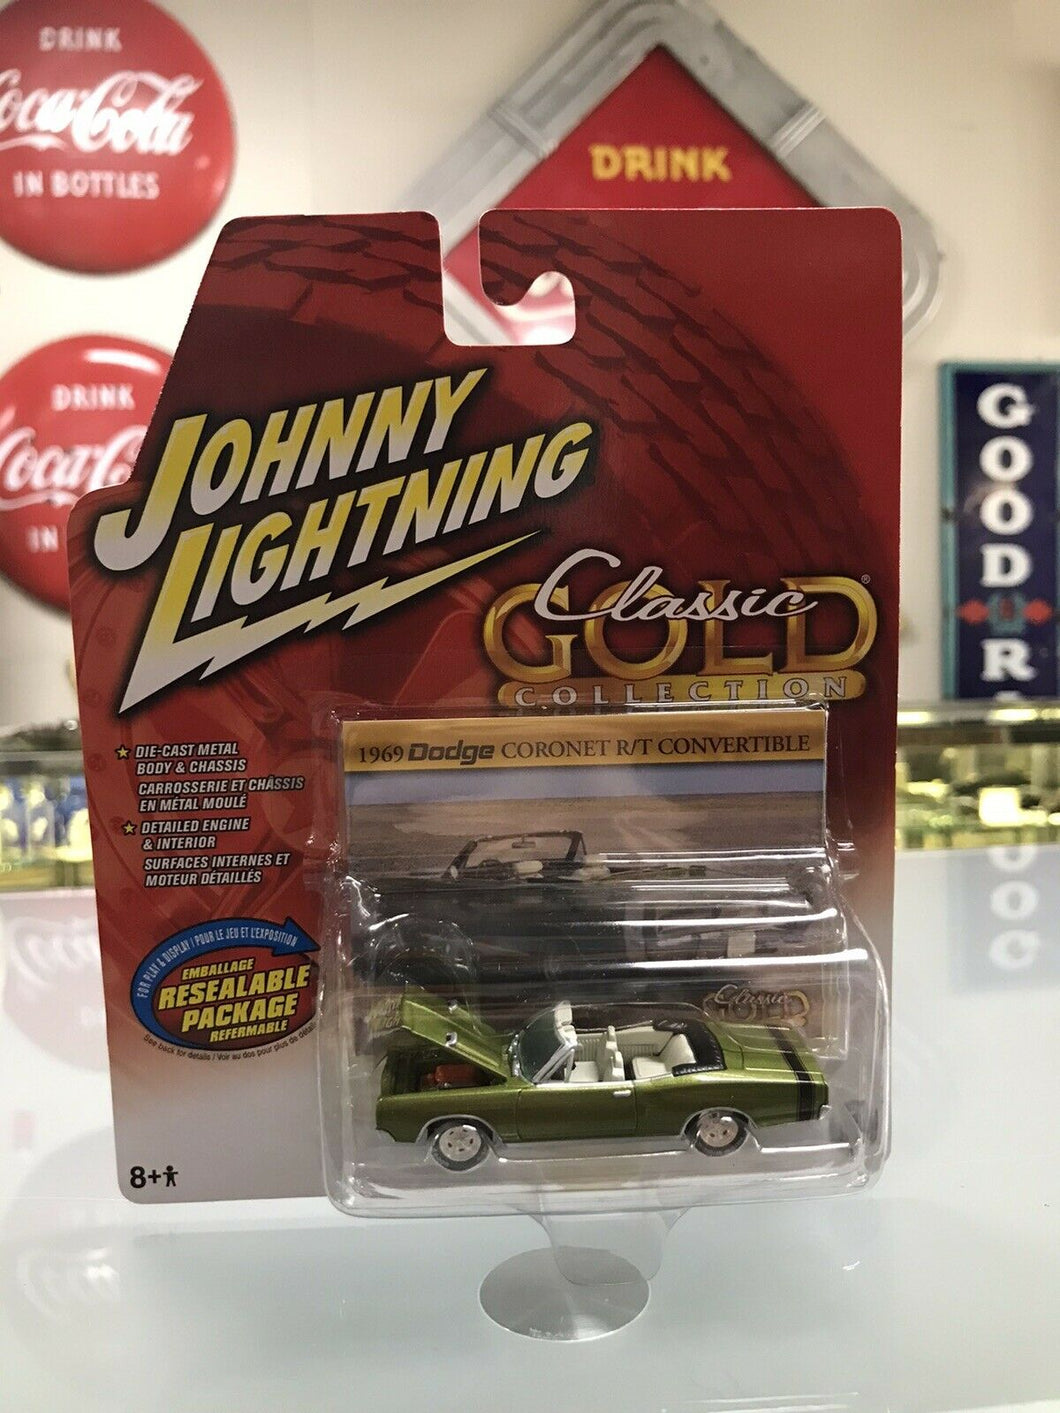 1969 dodge coronet RT convertible green Johnny lightning classic gold 2005 -8172